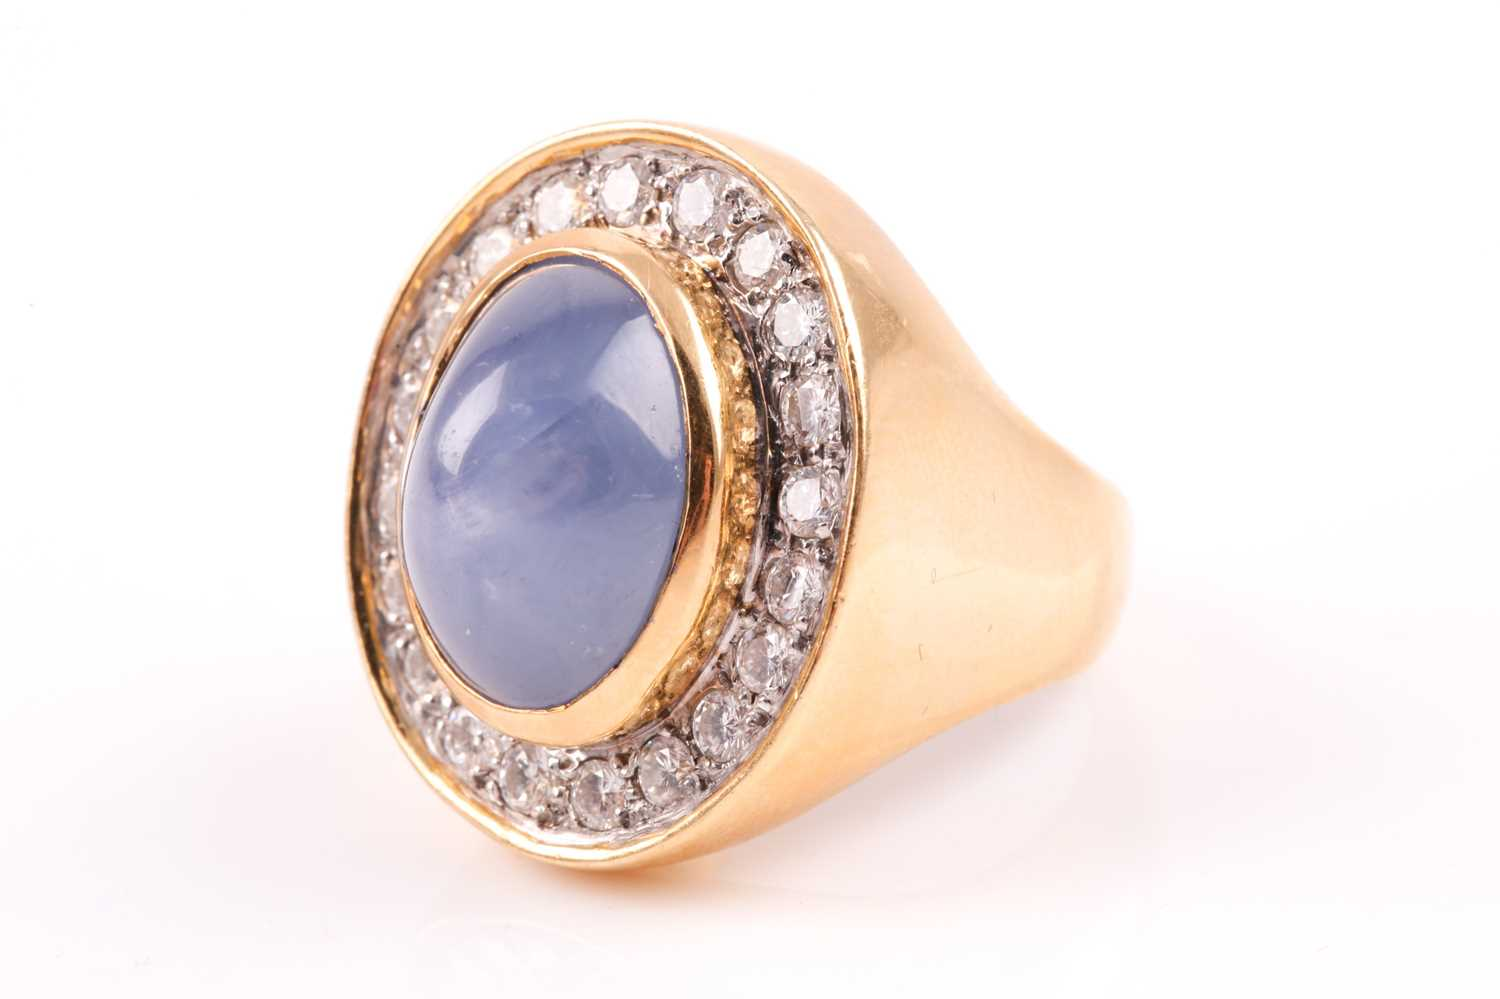 An 18ct yellow gold, diamond, and star sapphire cocktail ring, set with a domed cabochon sapphire, - Image 3 of 9